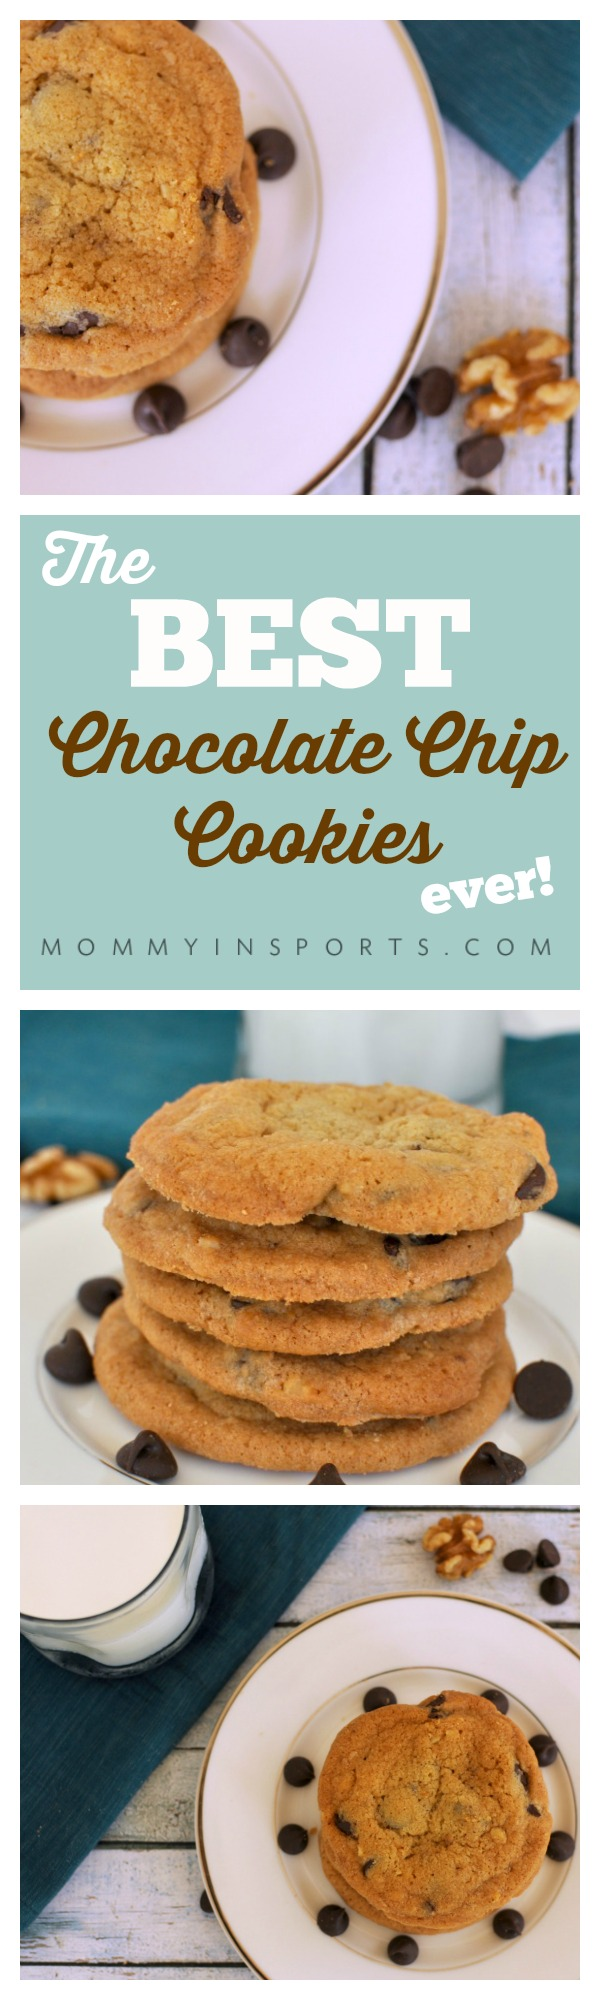 Looking for the best chocolate chip cookie recipe ever? This is it! the nostalgia of a fresh baked cookie from your childhood will come rushing back. Thanks Grandma Wylie!